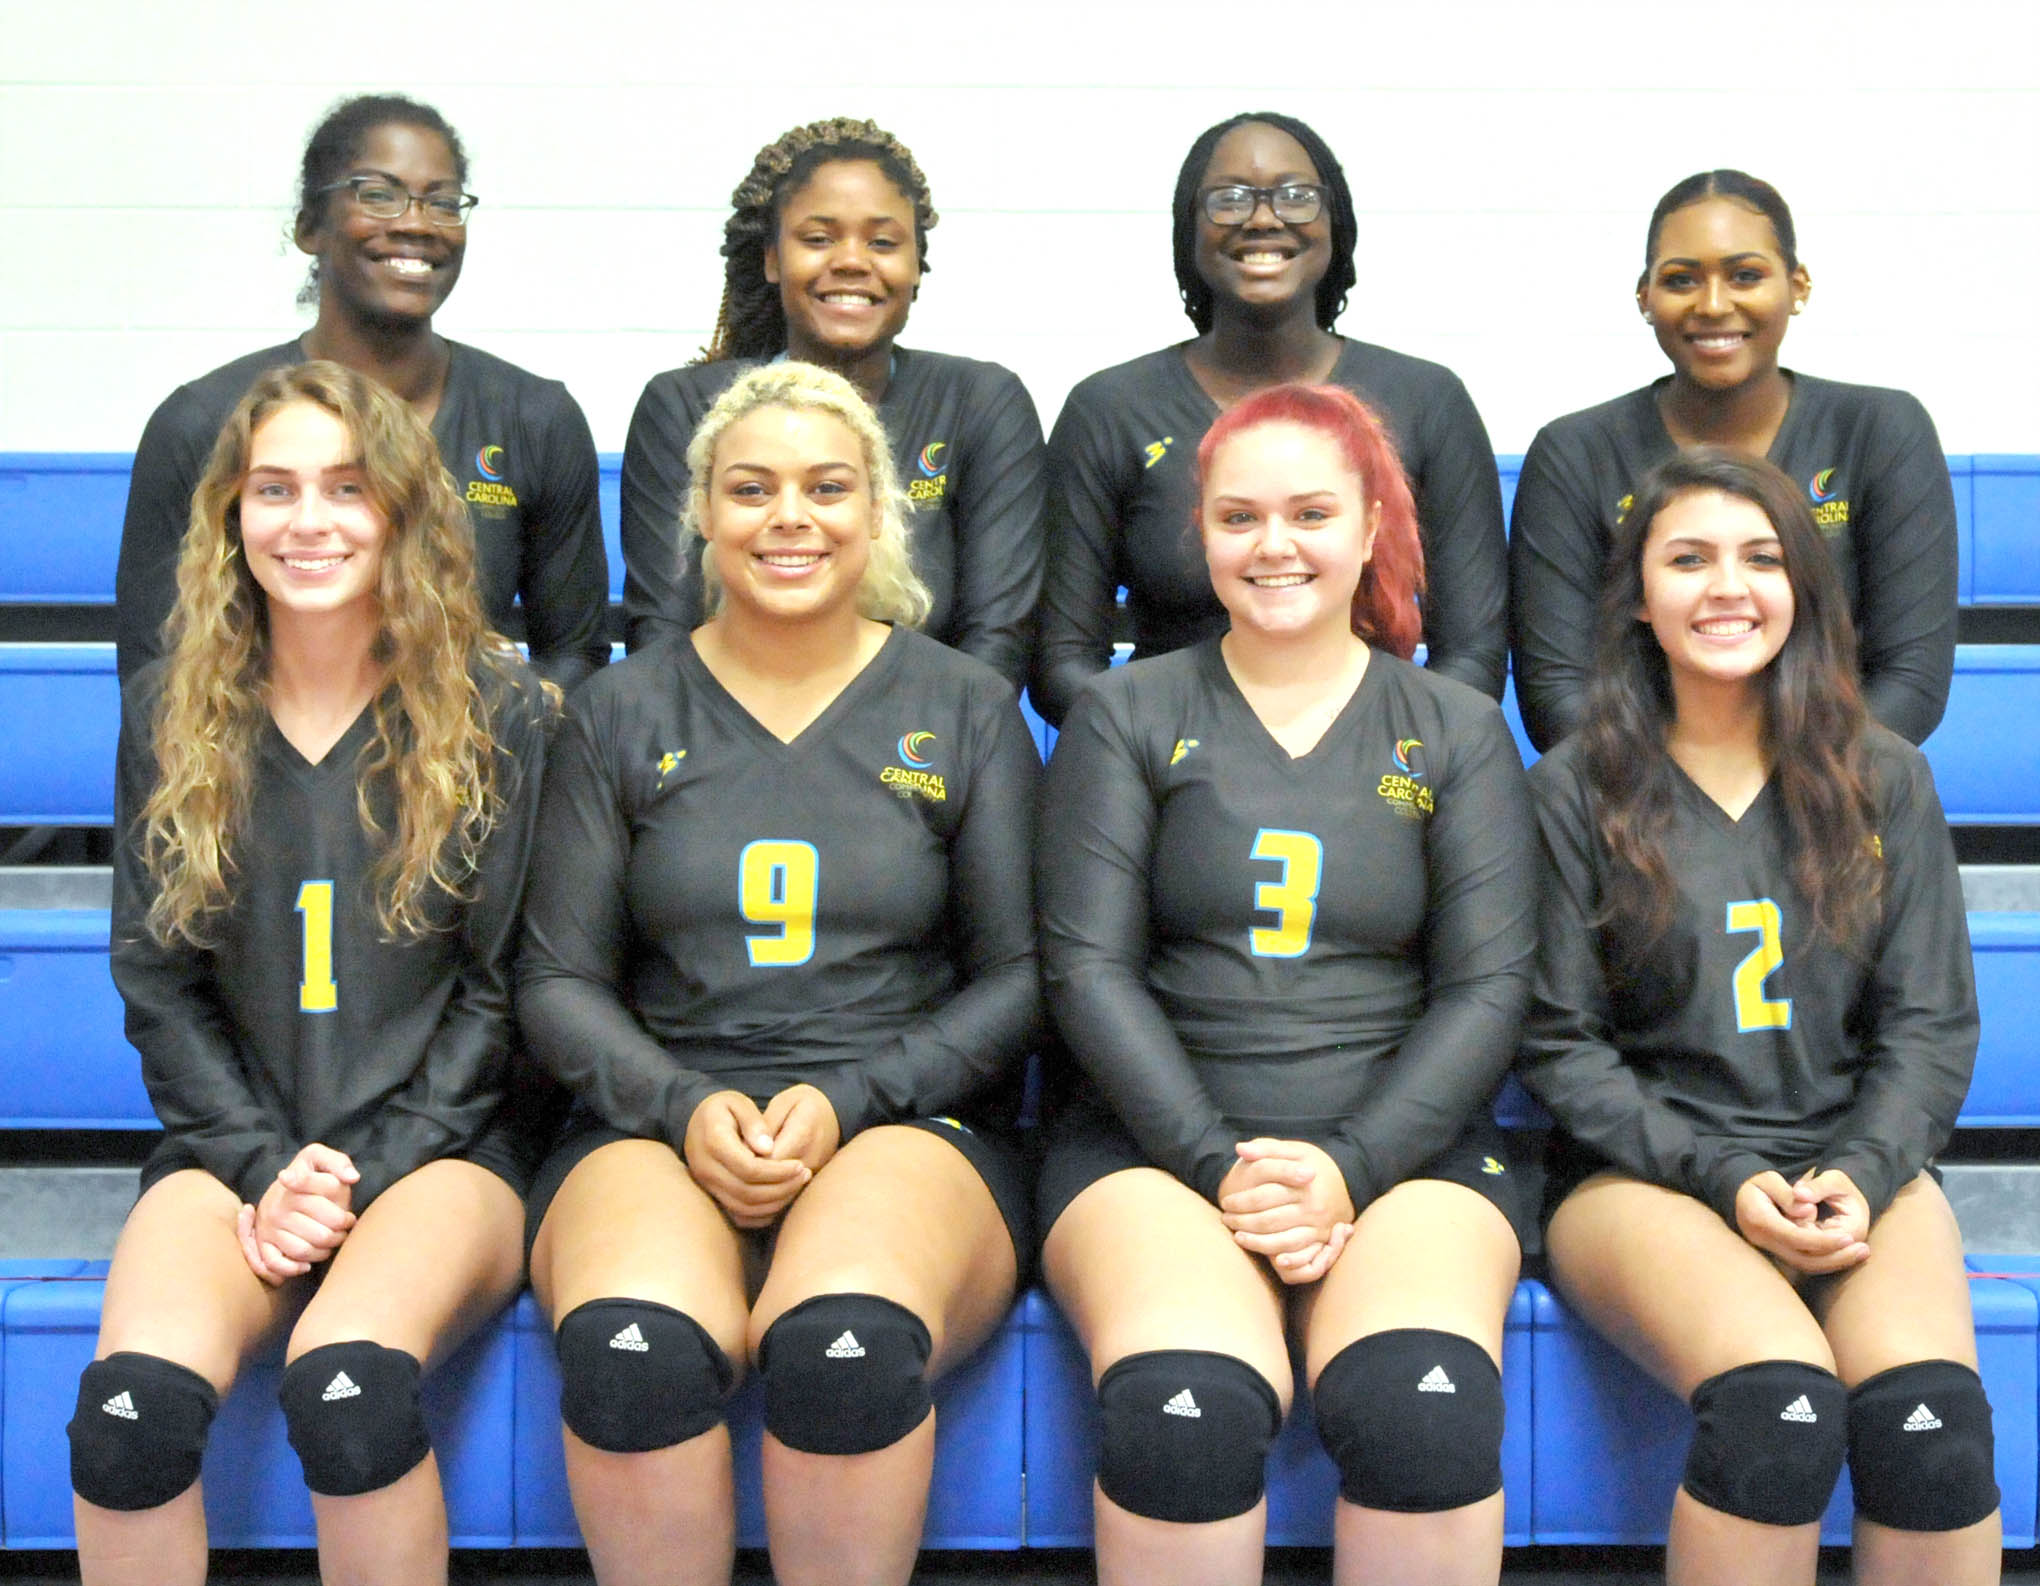 Click to enlarge,  Members of the Central Carolina Community College 2018 volleyball team are pictured, left to right: first row, Taylor Raines, Cheira Squalls, Kylie Javens, and Abigail Sean; second row, Carrie Johnson, Khalicia Lee, Daylene Thompson, and Naia Mellette.